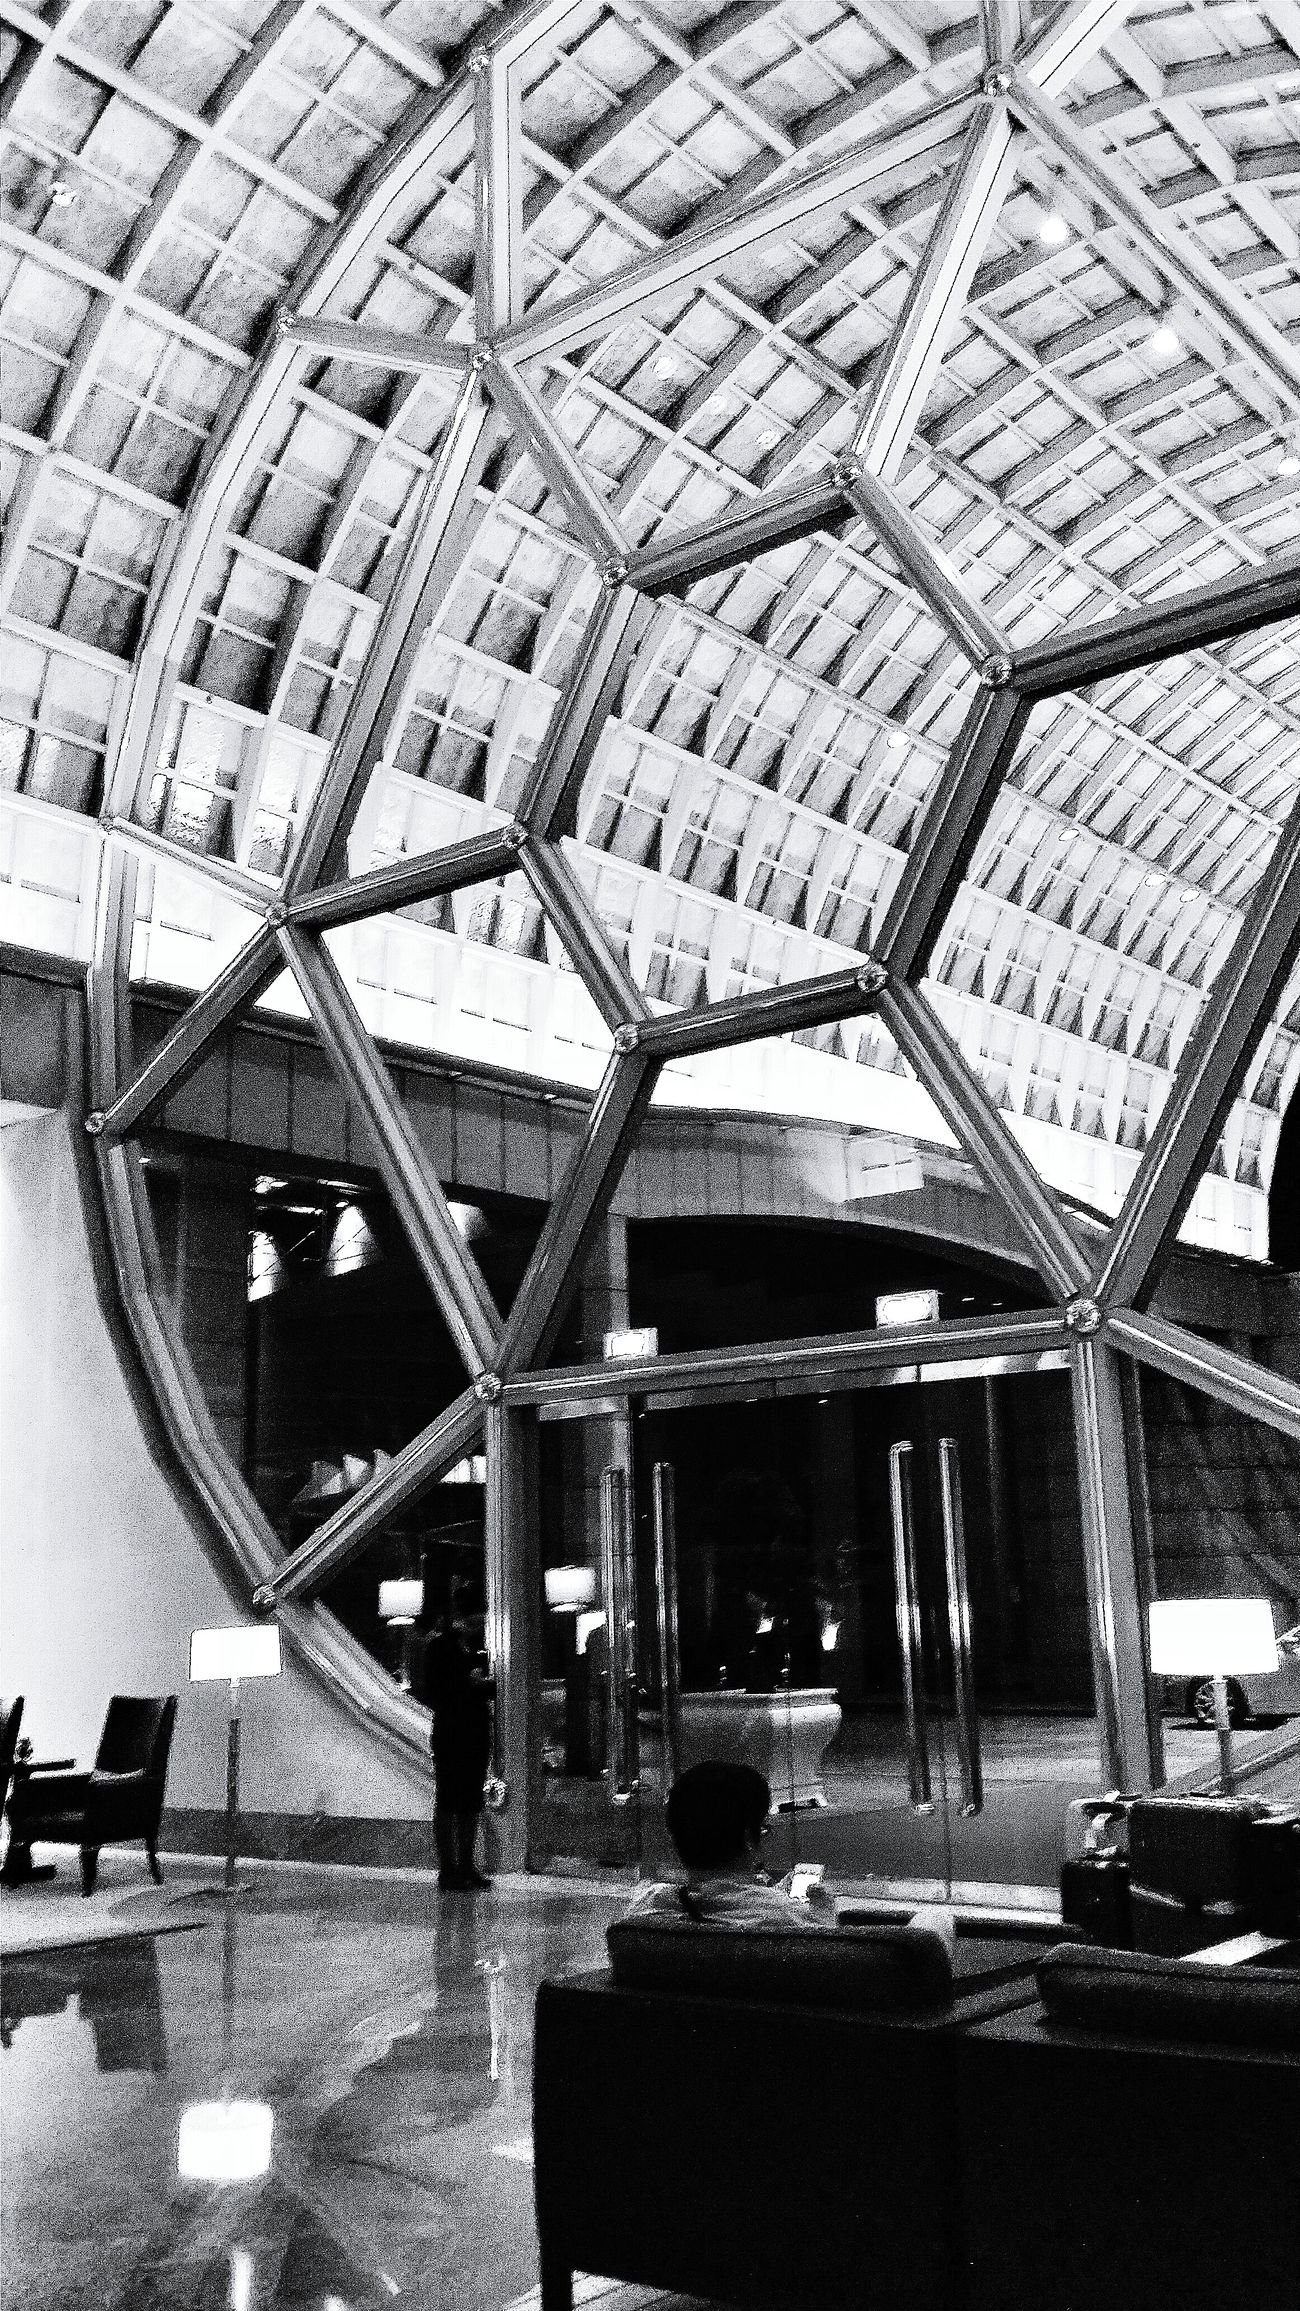 Architecture Ritz Carlton Building Design Bnw Bnw_society Bnw_city Bnw_globe Bnw_planet Bnw_life Bnw_worldwide Bnw_photo EyeEm Gallery Eyemphotography Eyeemcollection Eyeem Architecture EyeEm Bnw Learn & Shoot: Balancing Elements